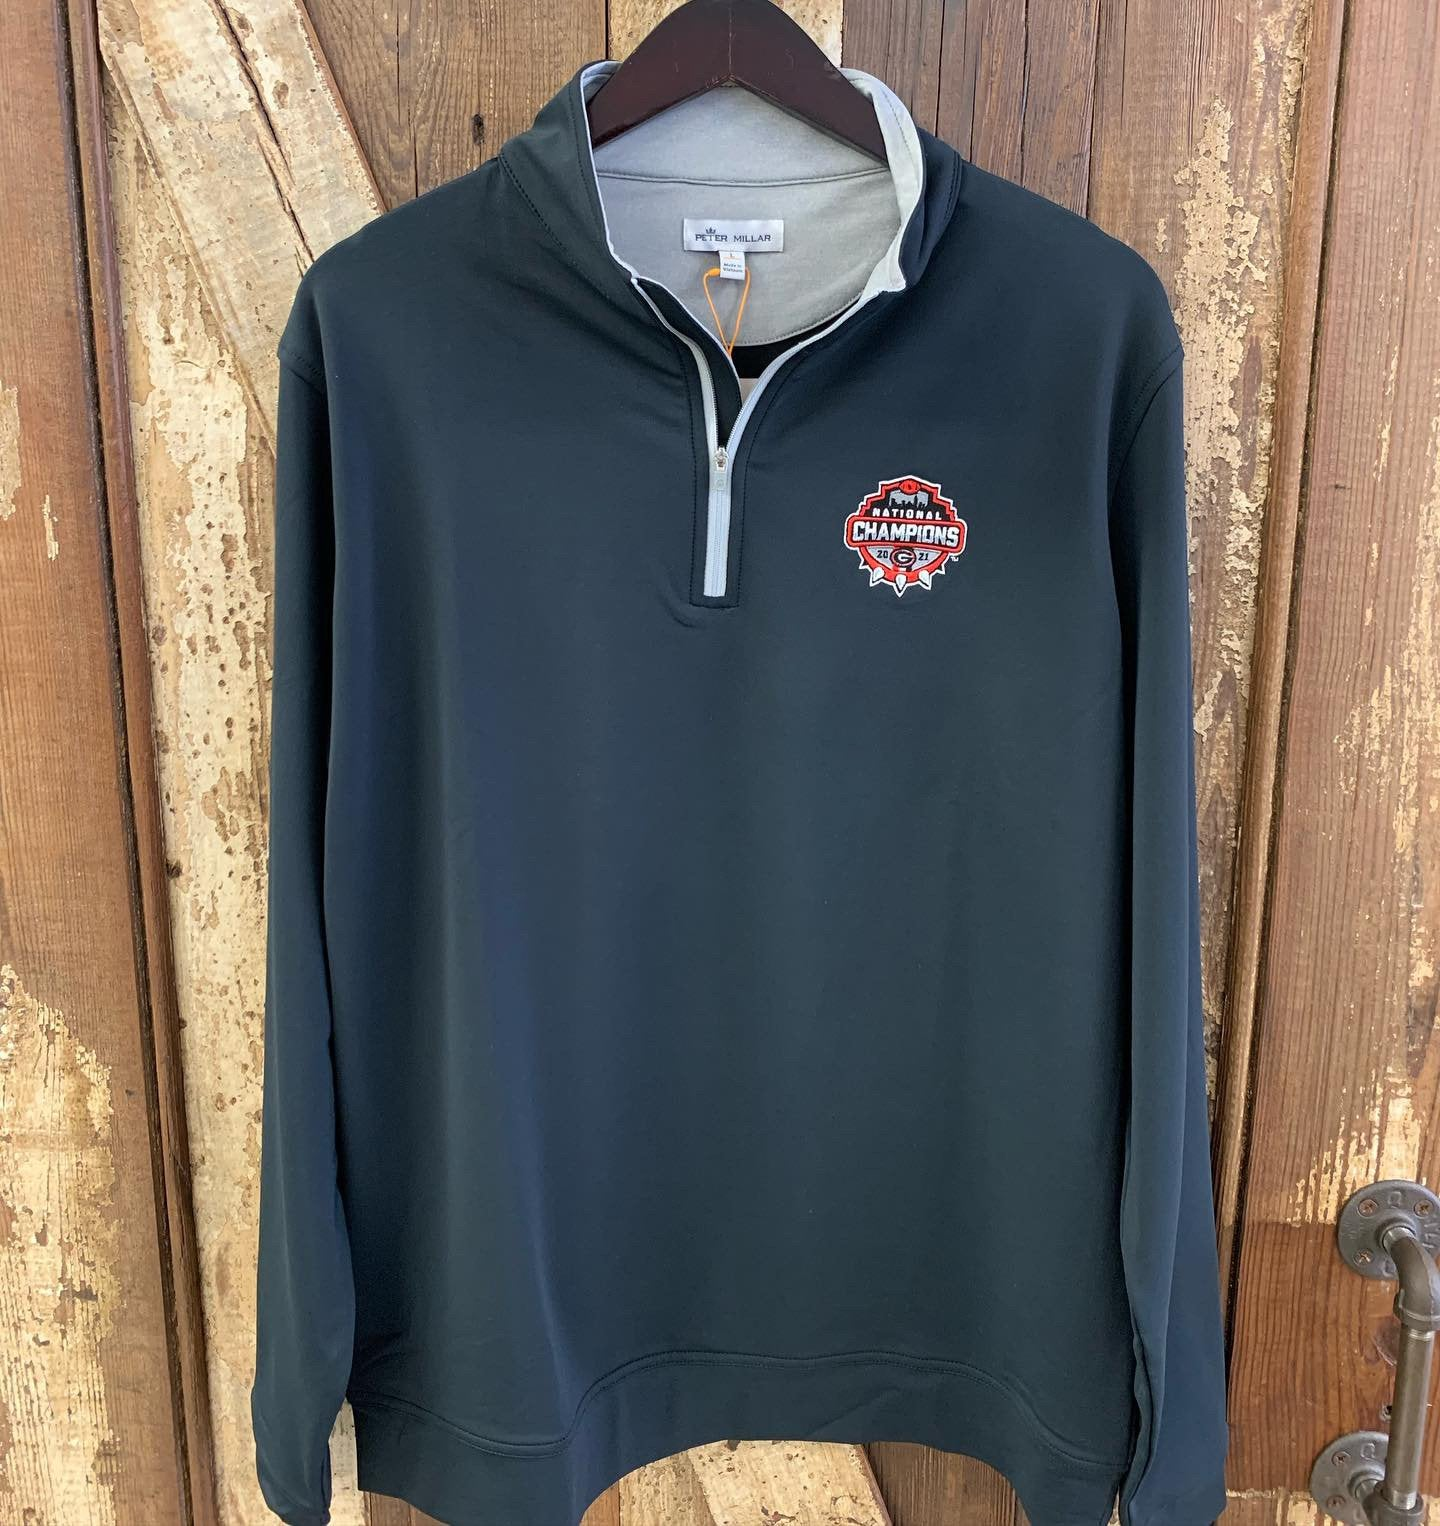 Riley's Menswear